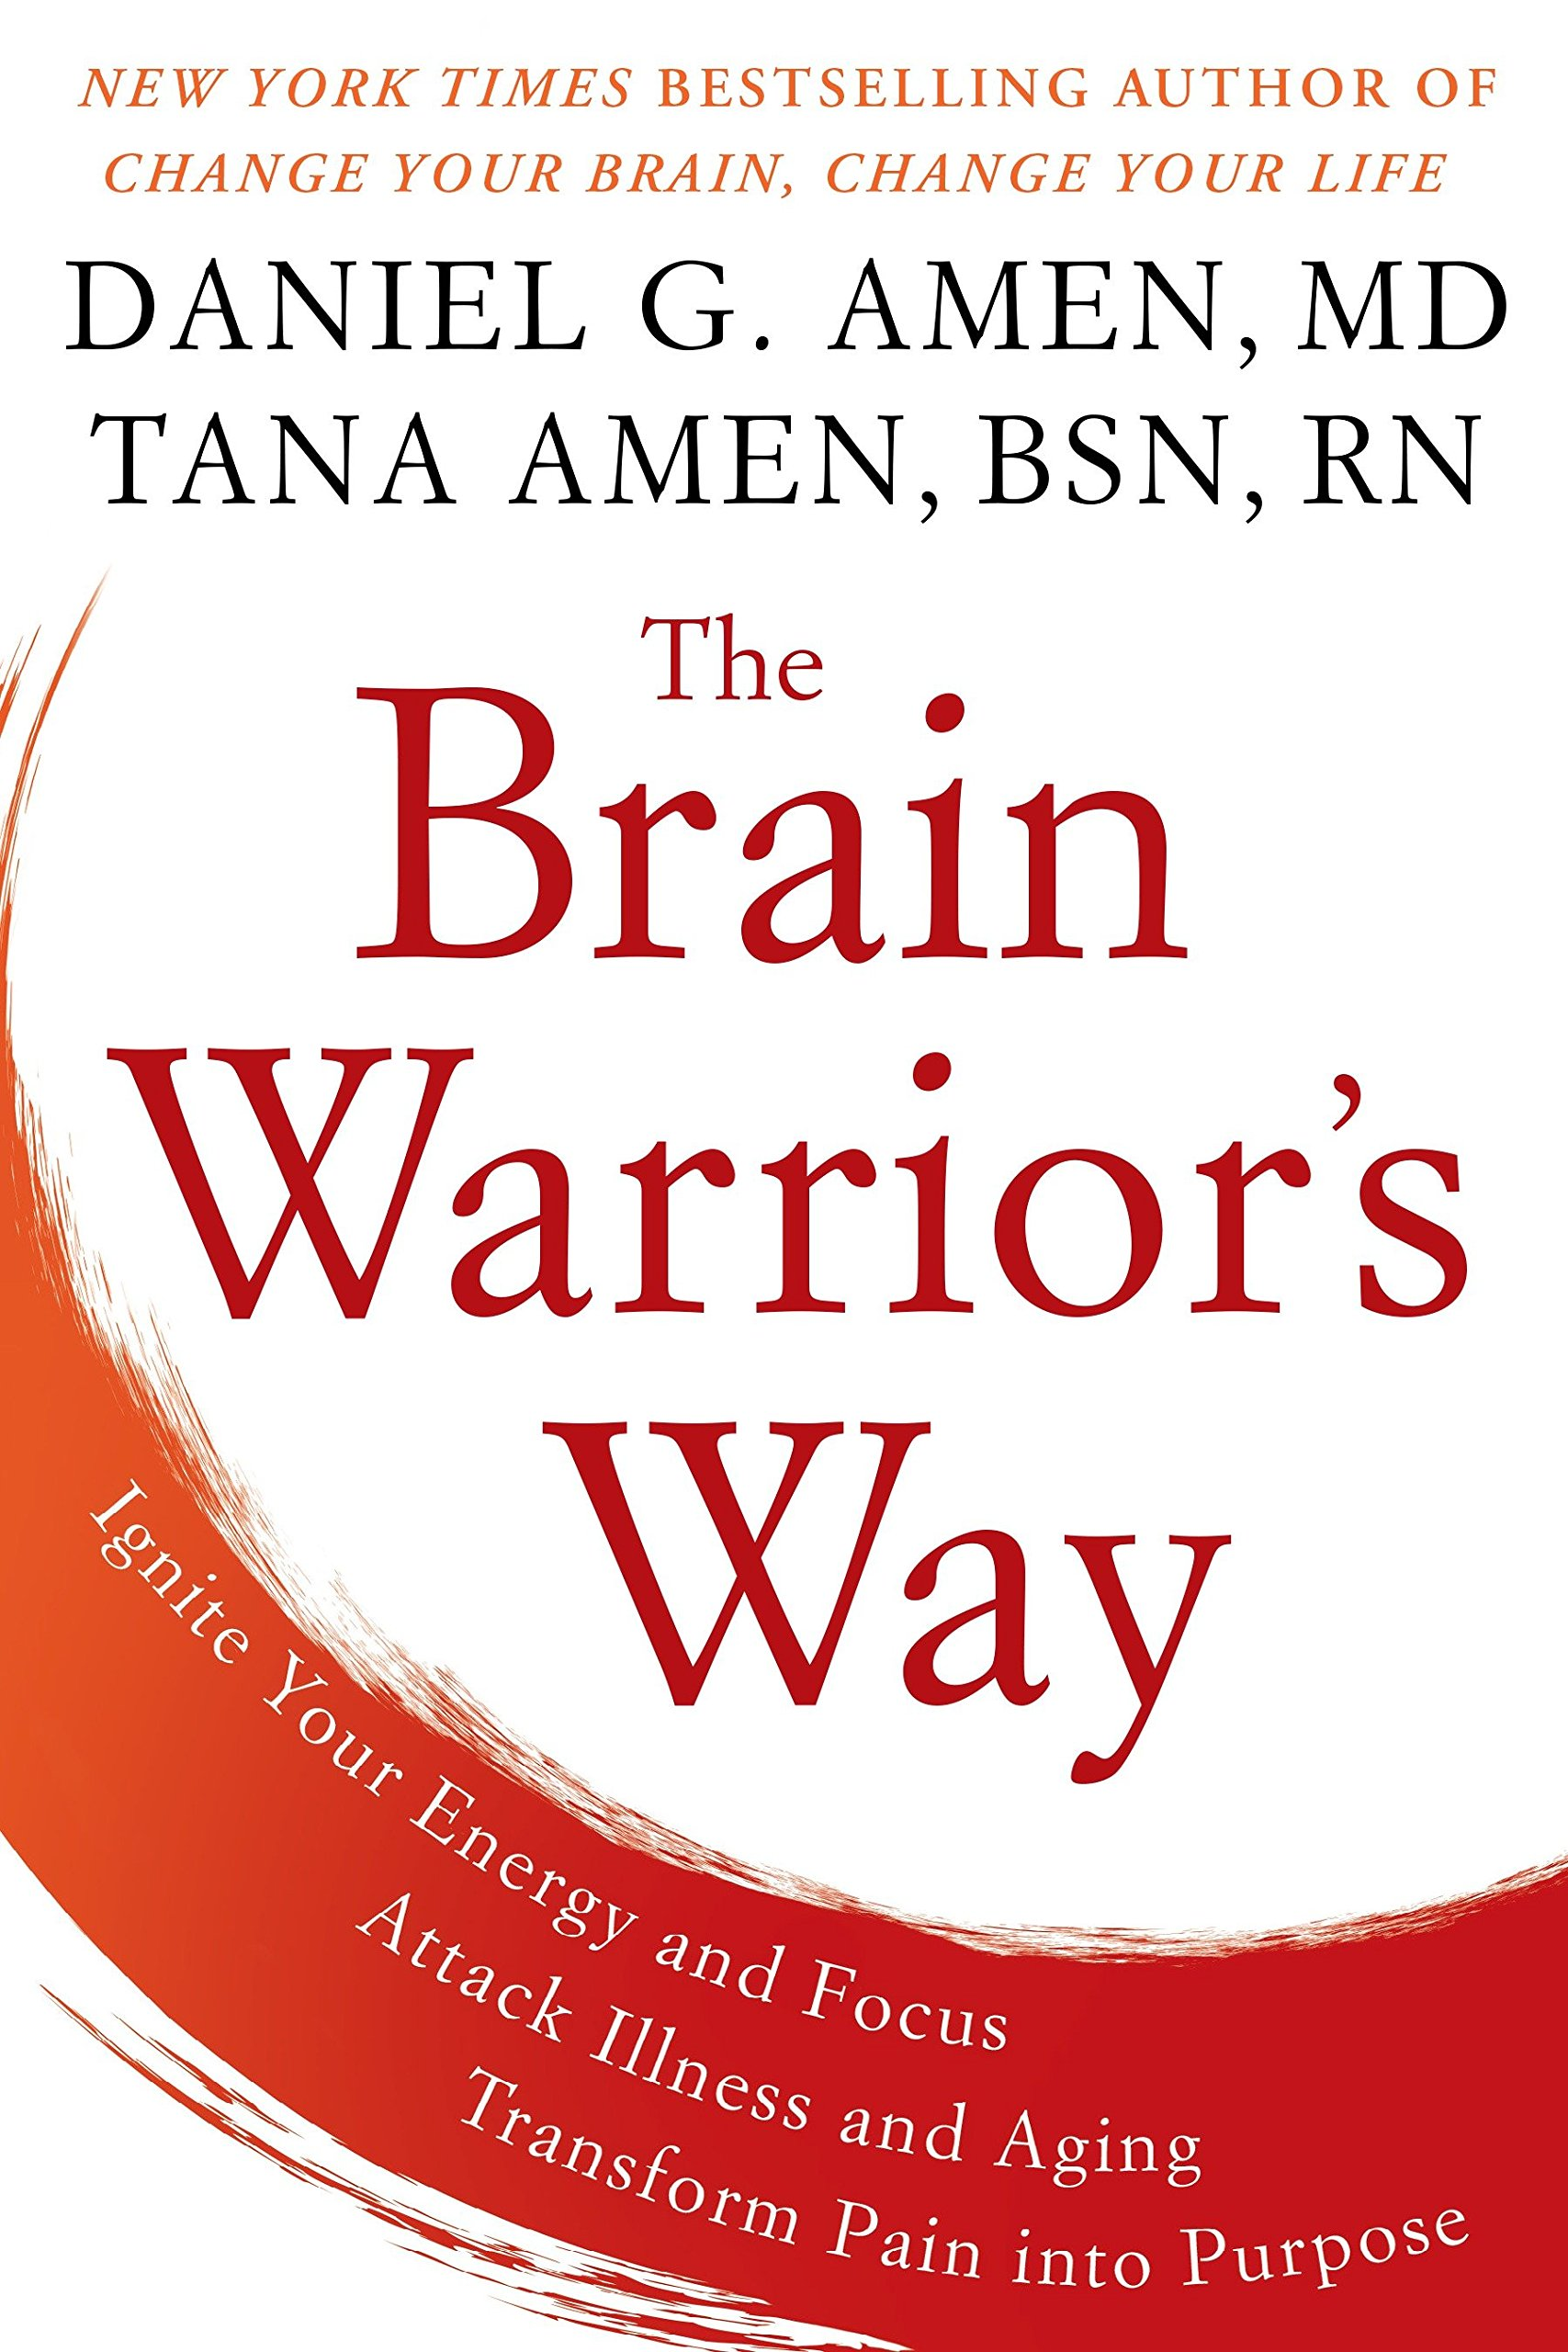 The Brain Warrior's Way  Ignite Your Energy And Focus Attack Illness And Aging Transform Pain Into Purpose